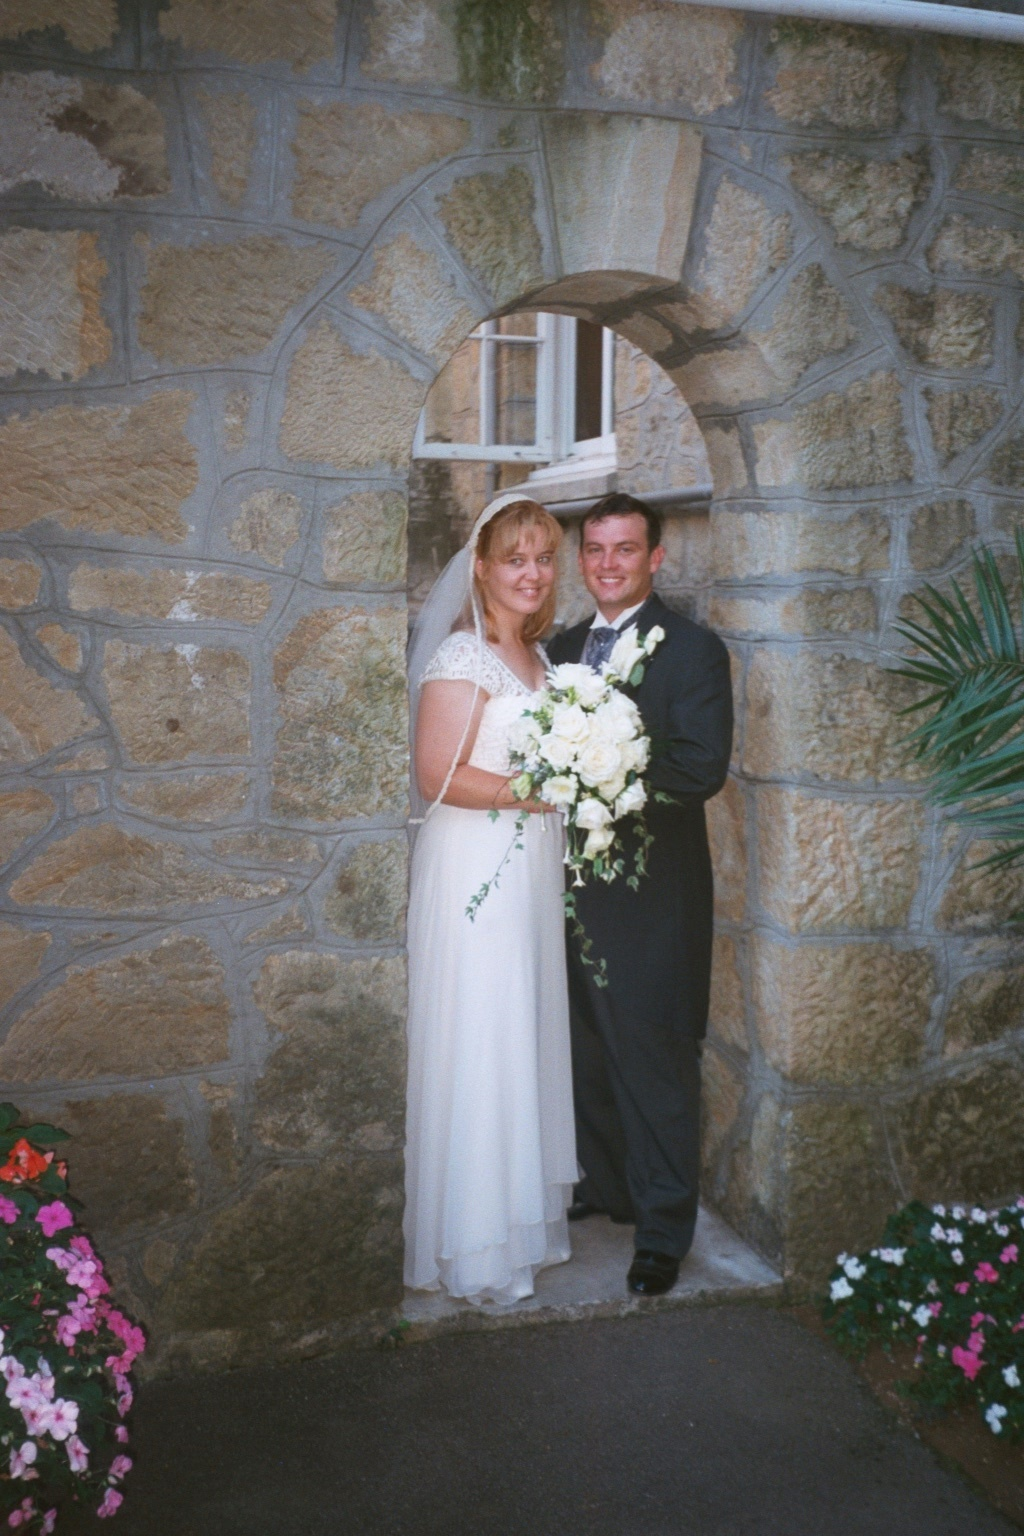 Bride, Groom, Winery, Archway, Beau weddings events